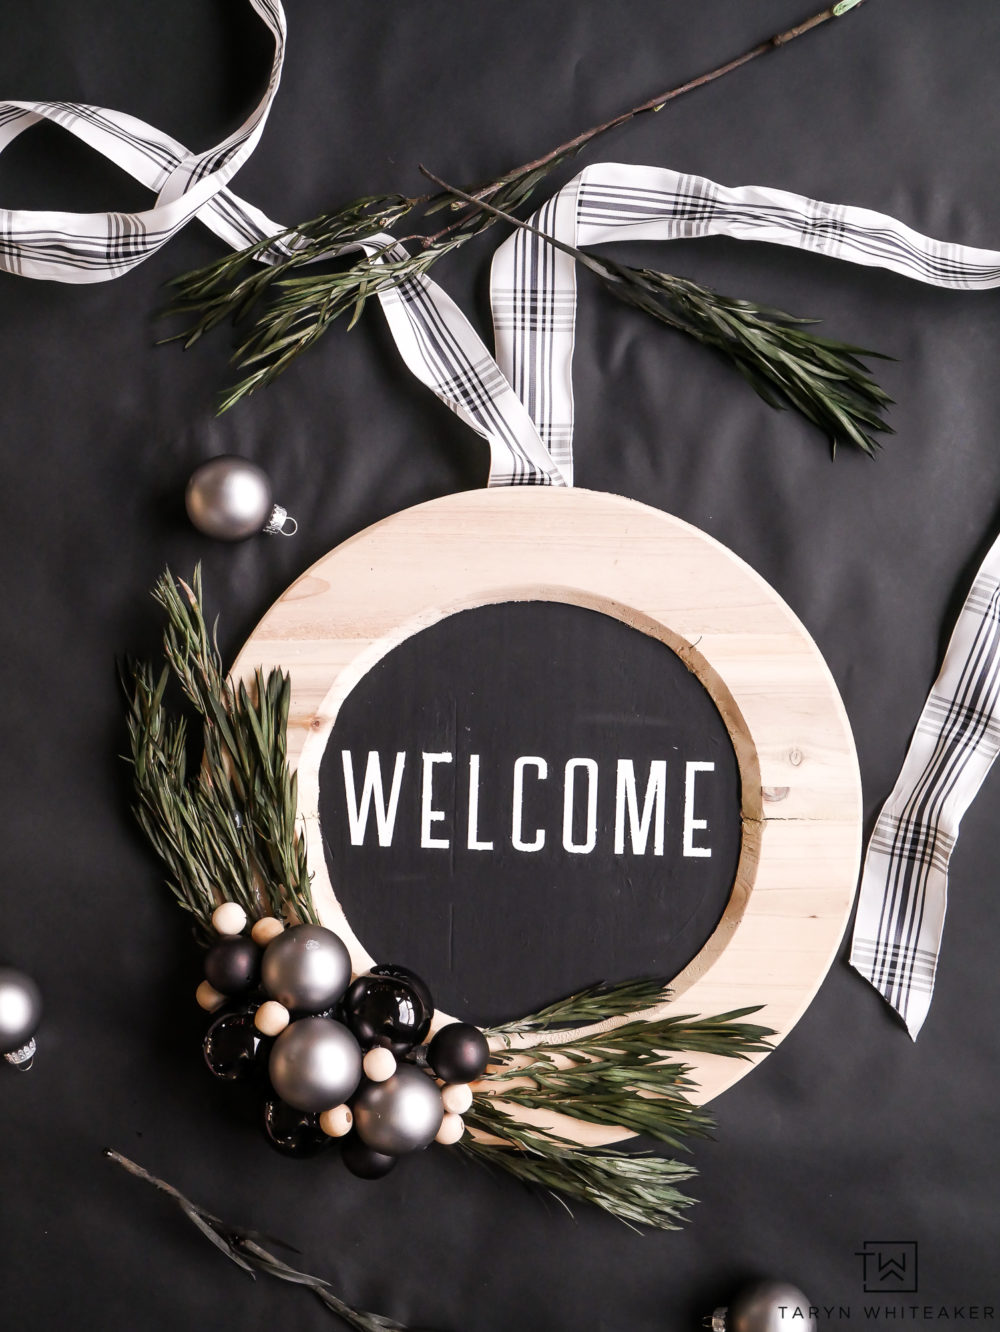 Diy Plate Charger Christmas Wreath Taryn Whiteaker